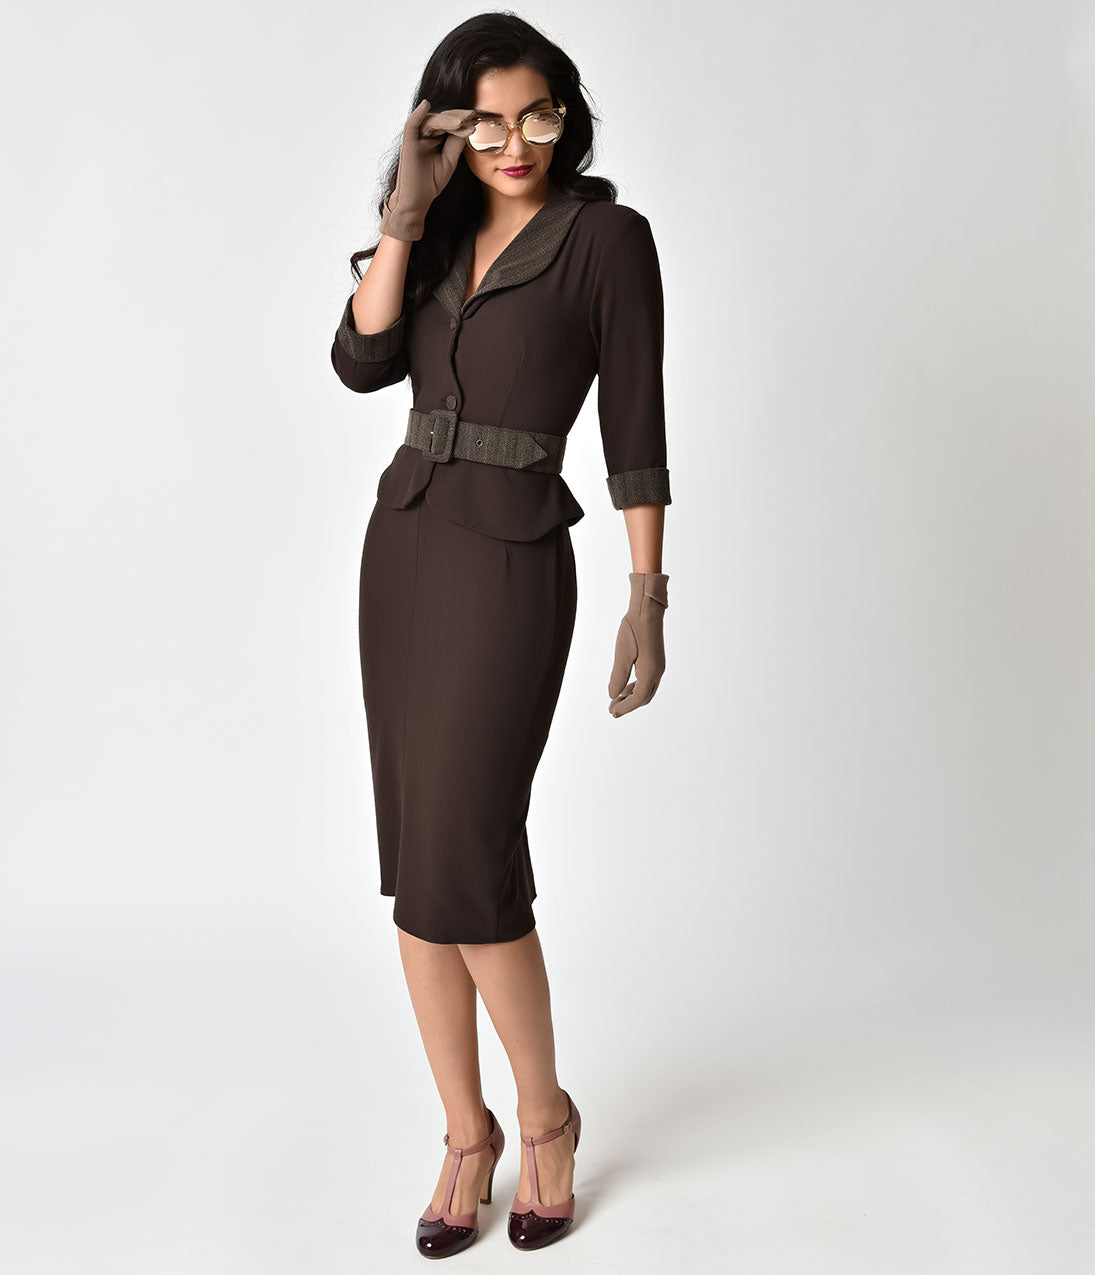 Women's 1940s Victory Suits and Utility Suits Miss Candy Floss 1940S Style Agent Carter Inspired Brown Gunni Dora Suit Dress $152.00 AT vintagedancer.com